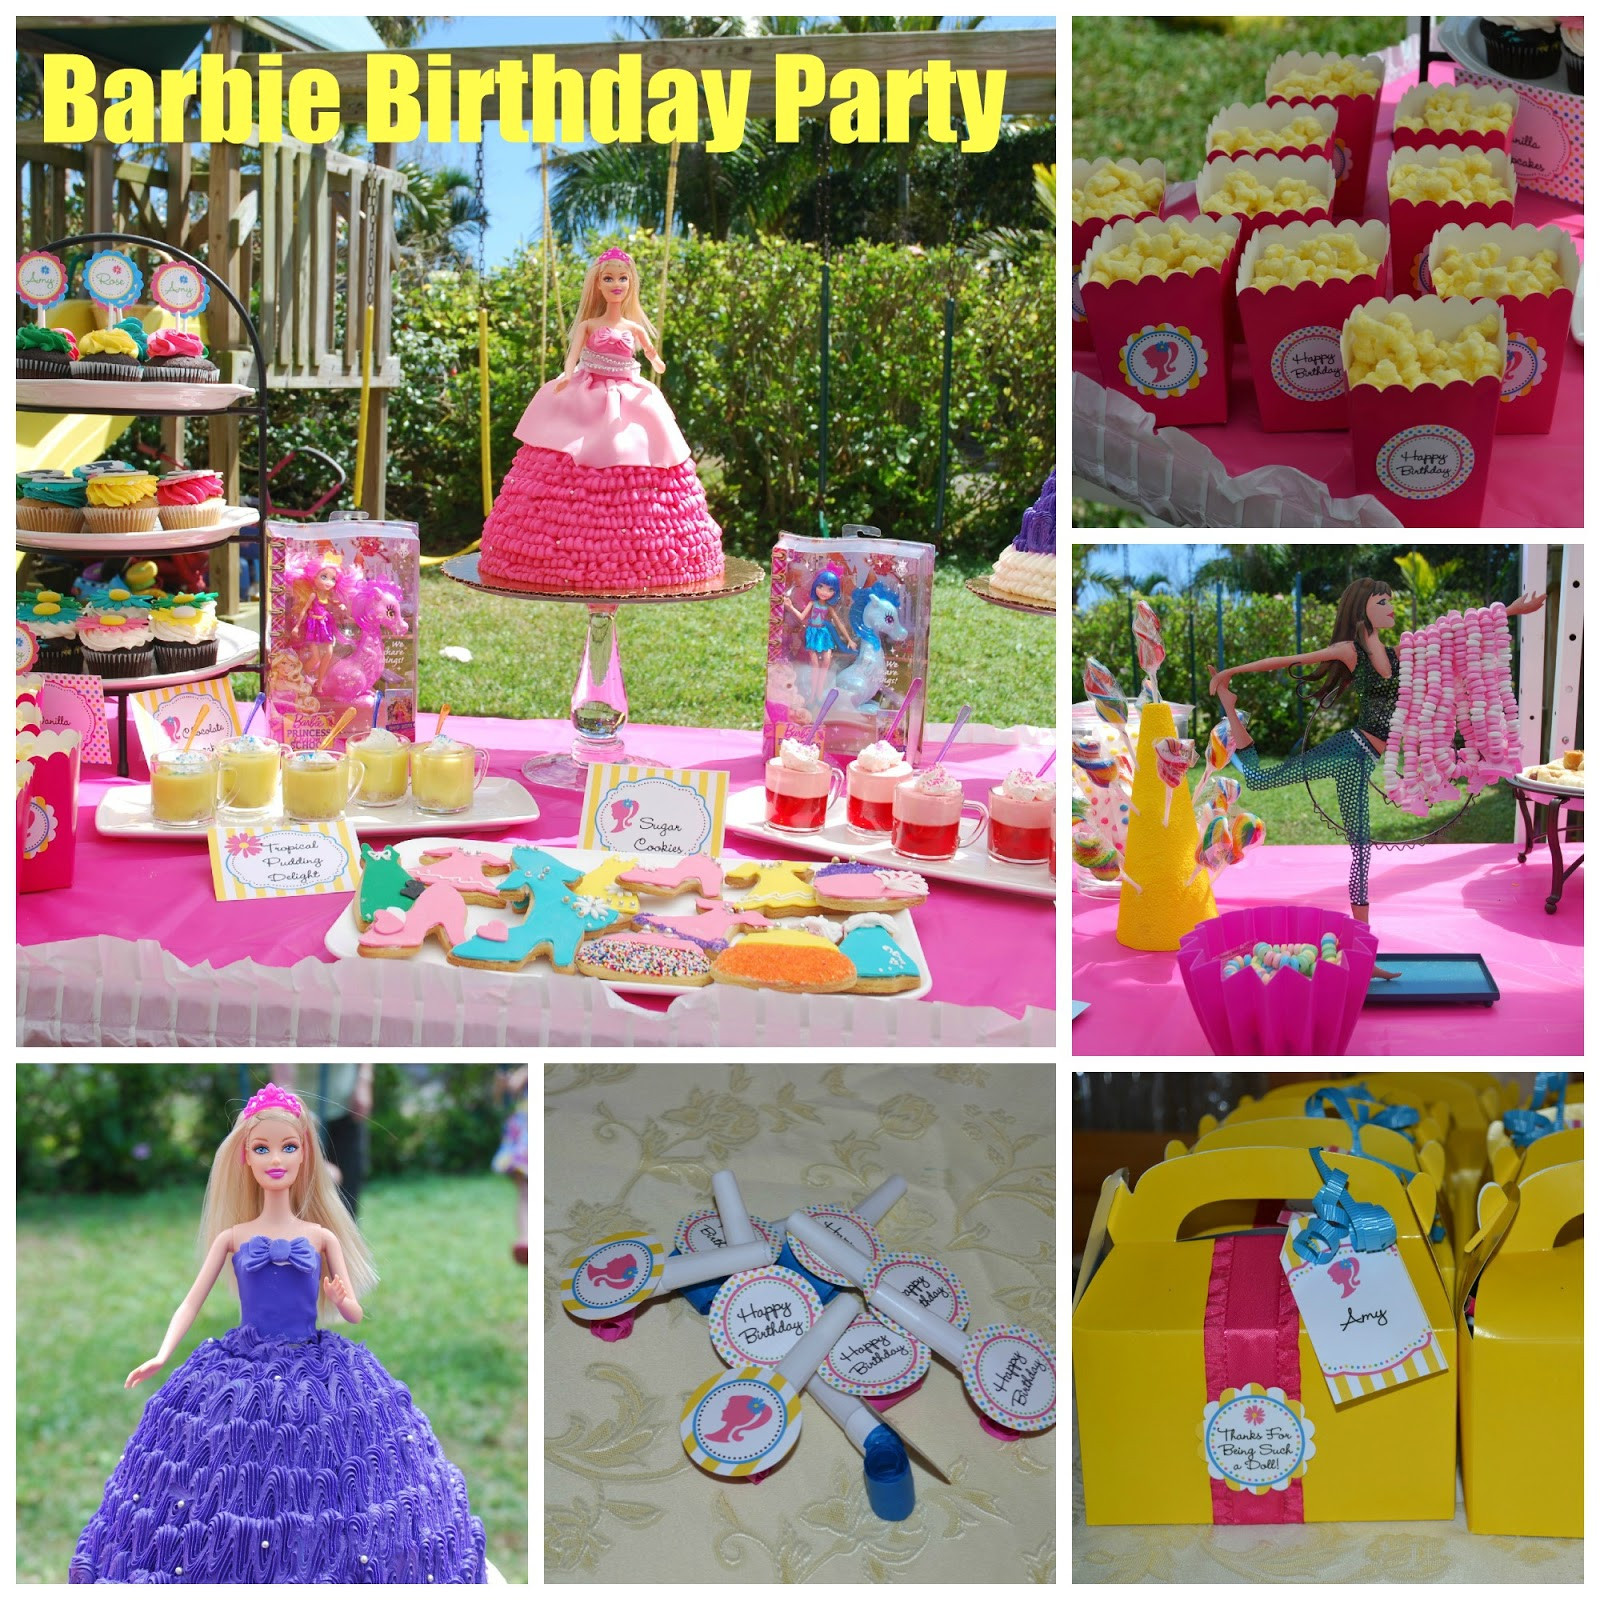 Best ideas about Barbie Birthday Party . Save or Pin Food Family Fun Barbie Birthday Party Now.